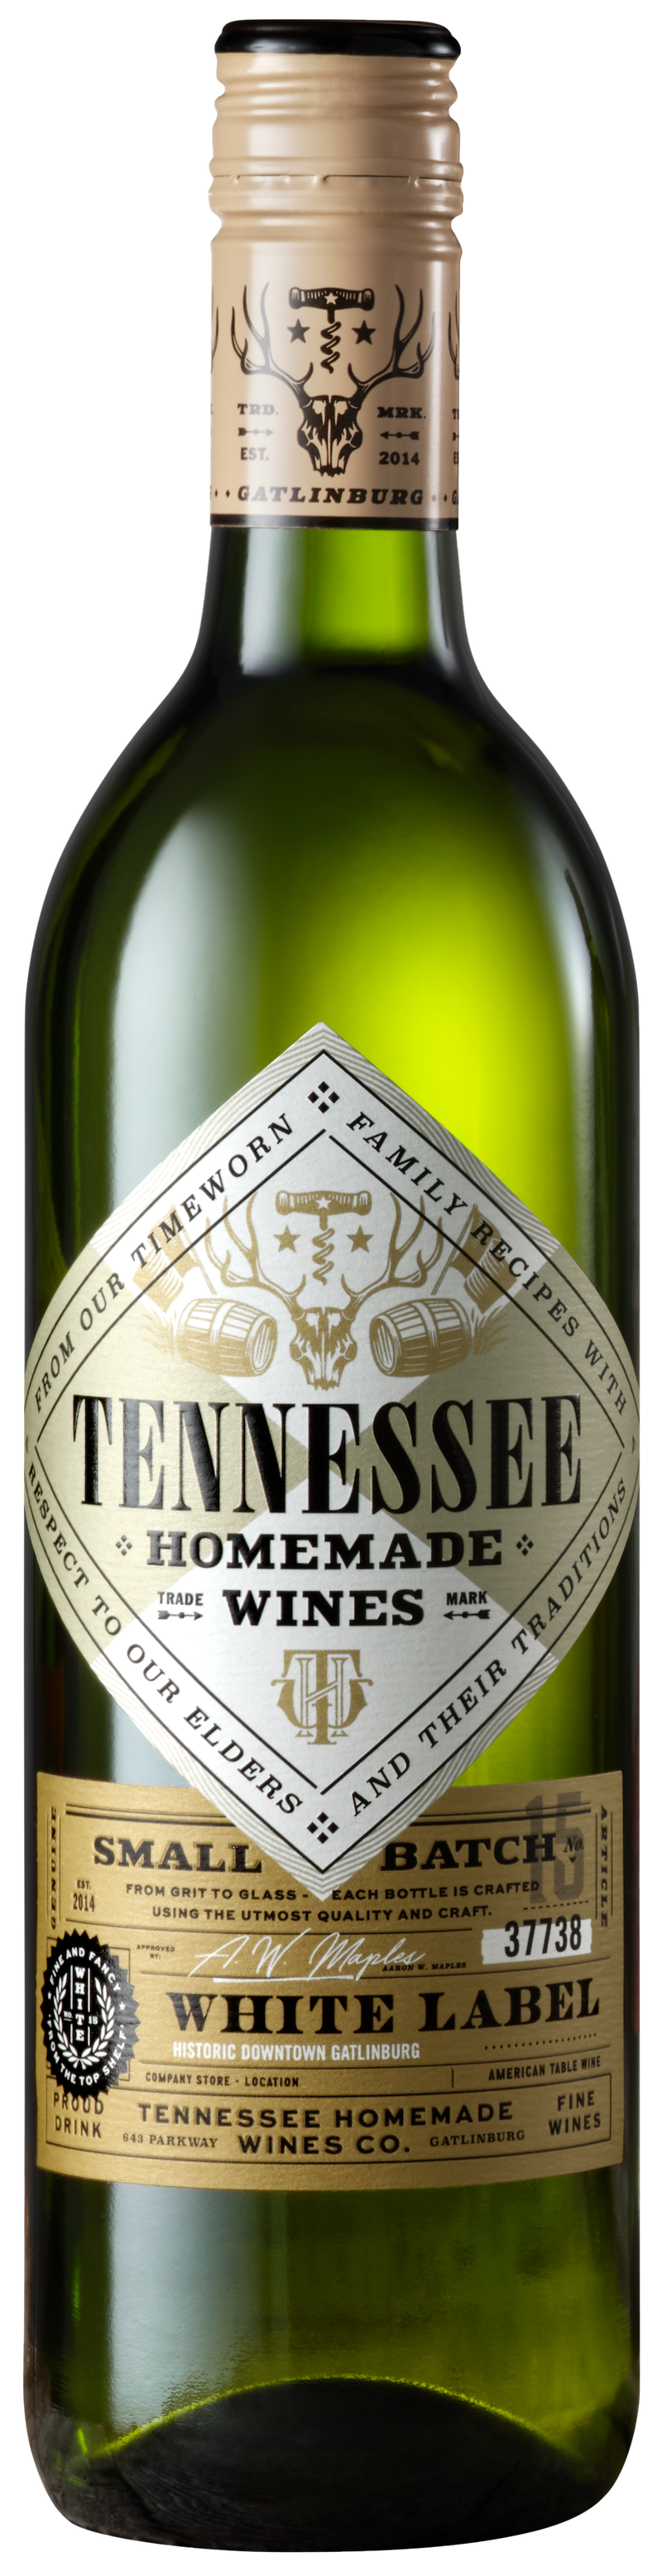 Tennessee Homemade Wines white label wine